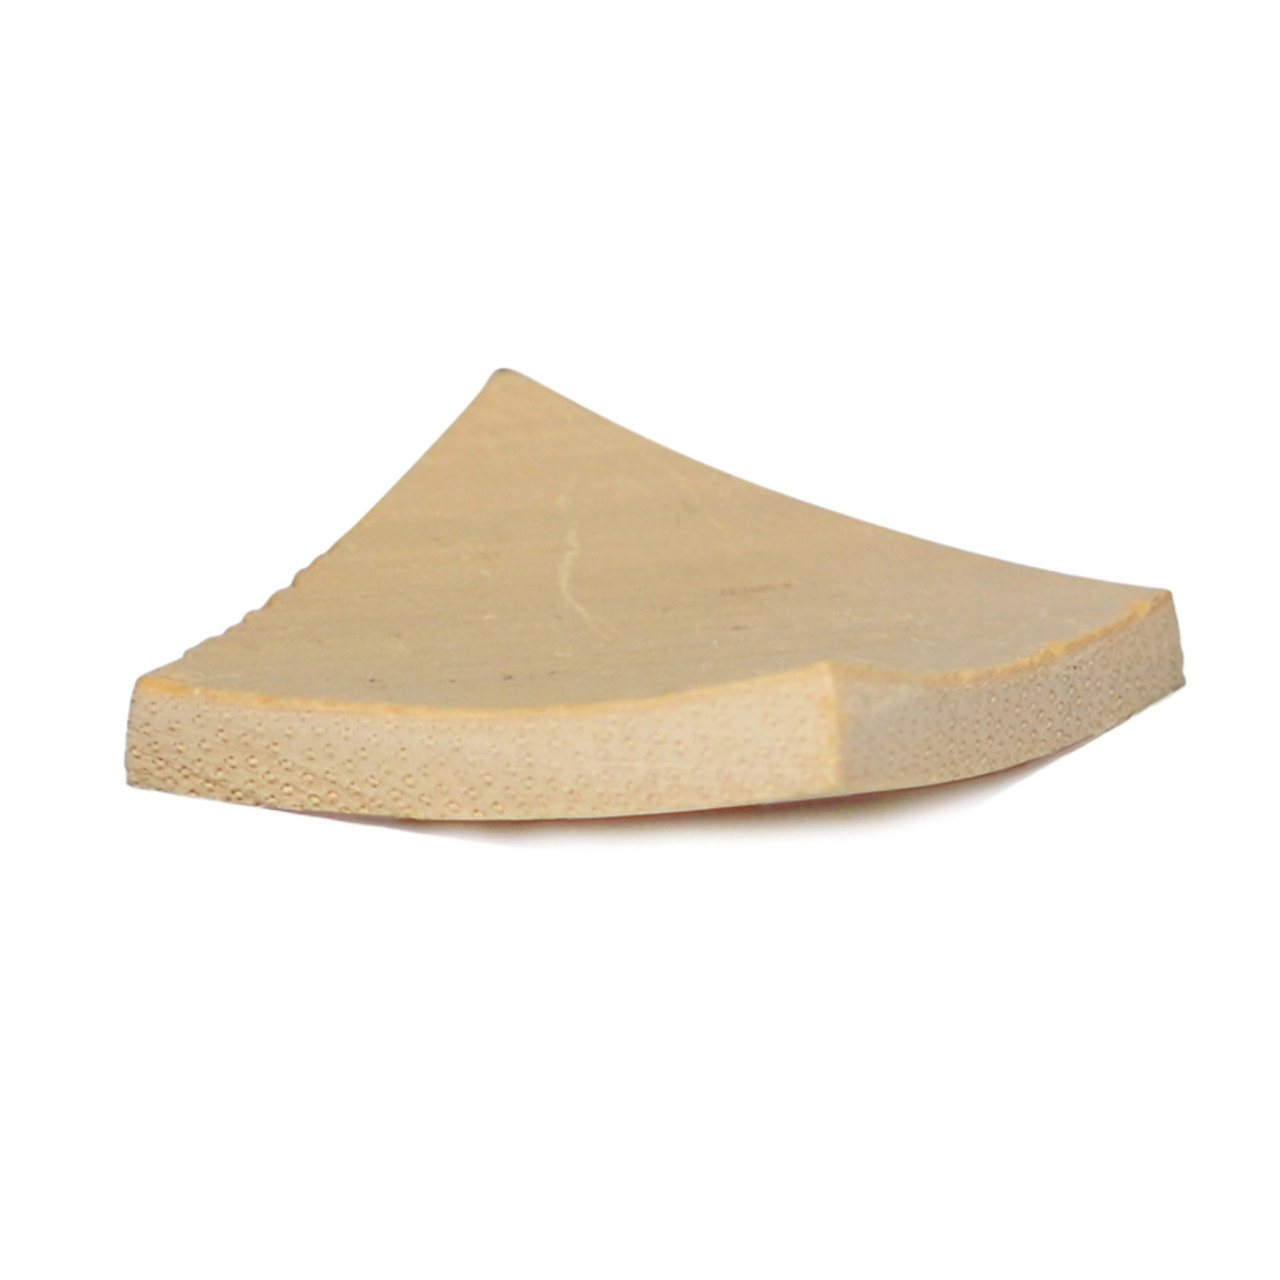 Iki Square Smooth Bamboo - L:1.4 x W:1.4 x H:.22in